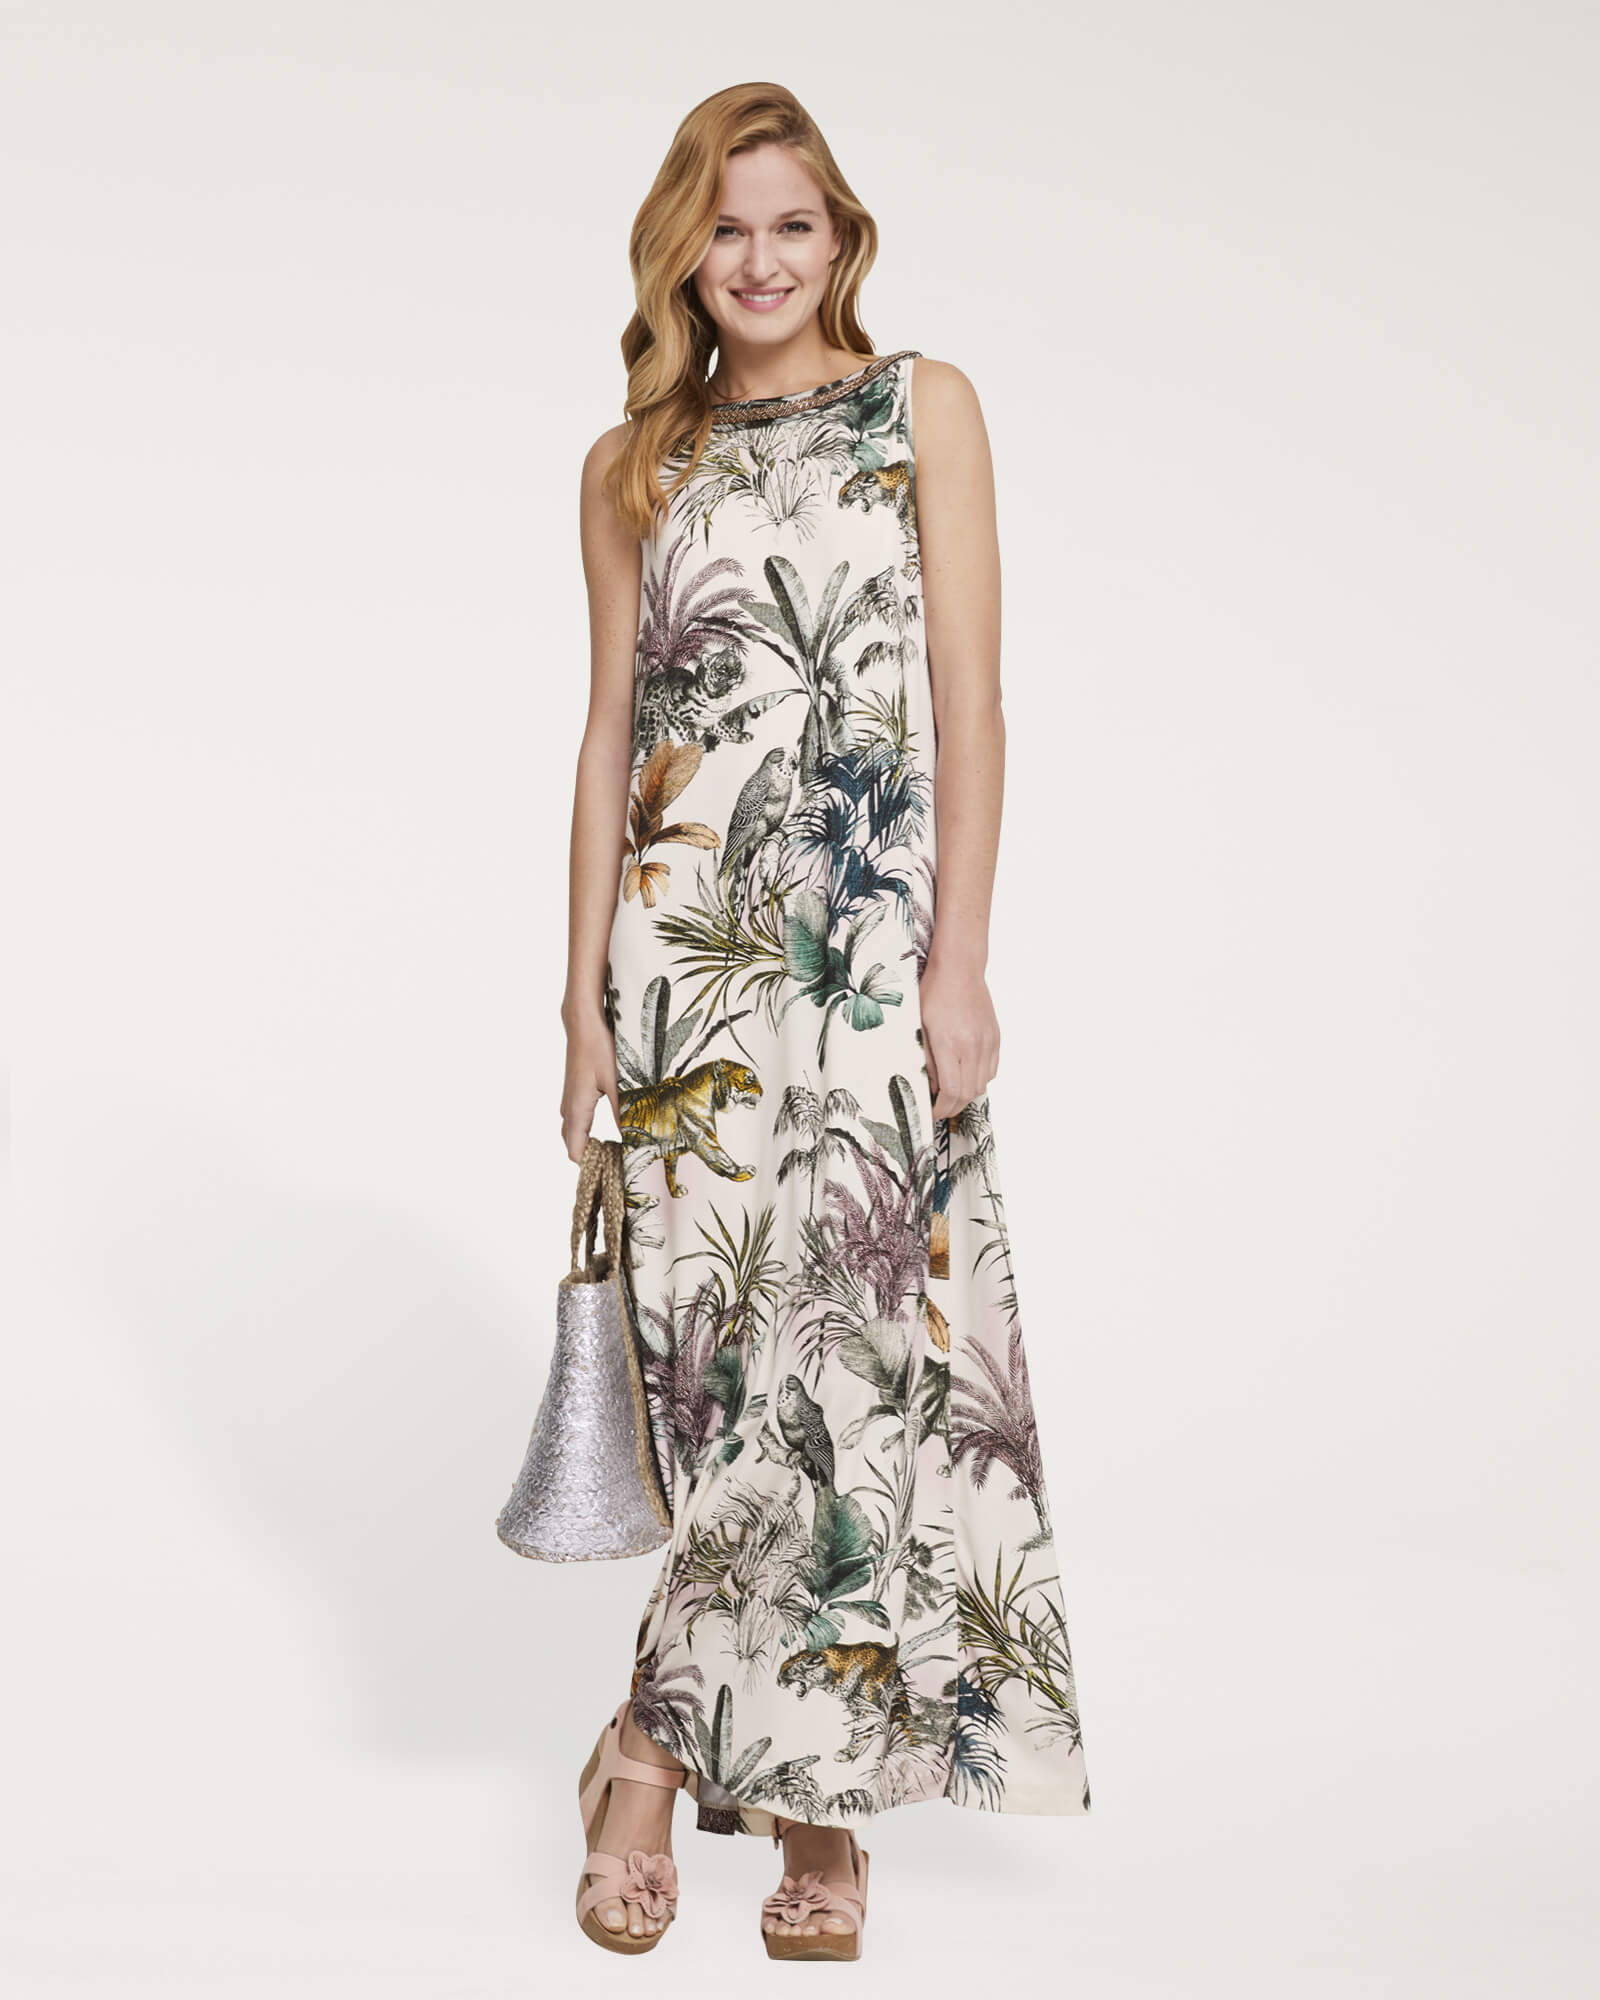 Maxikleid mit Tropical Prints